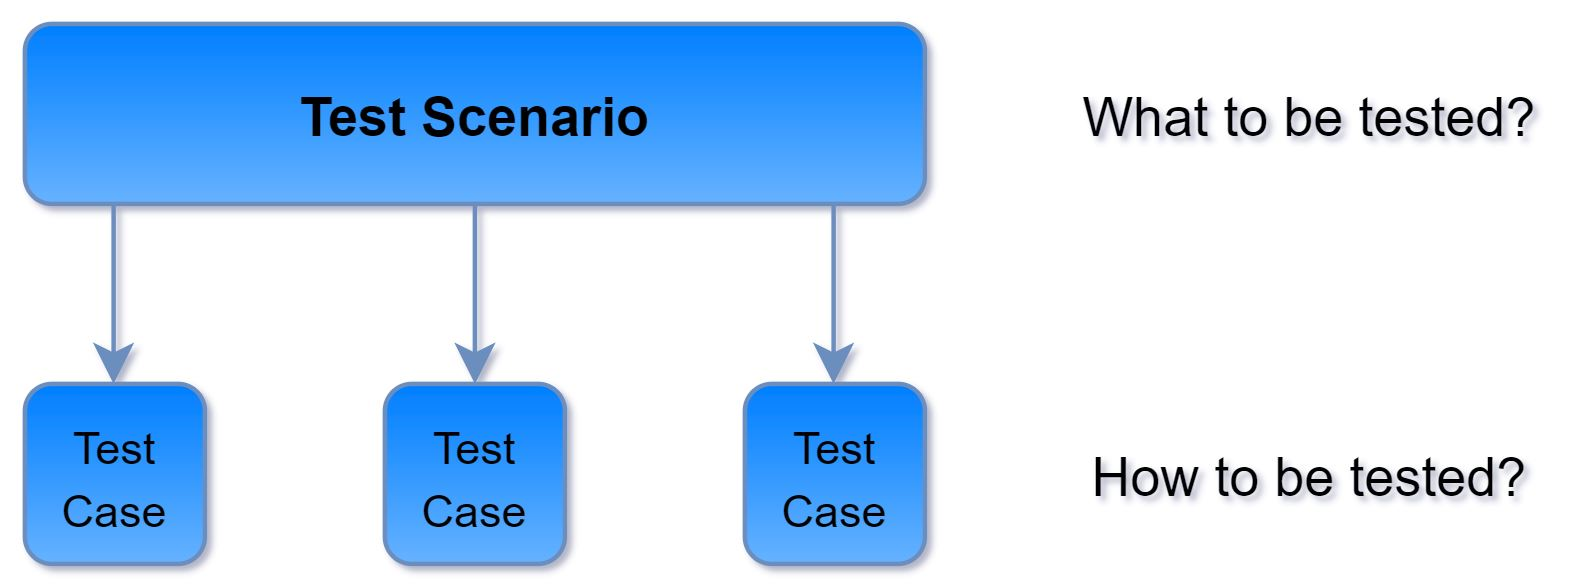 images/from_test_scenario_to_test_cases.jpg